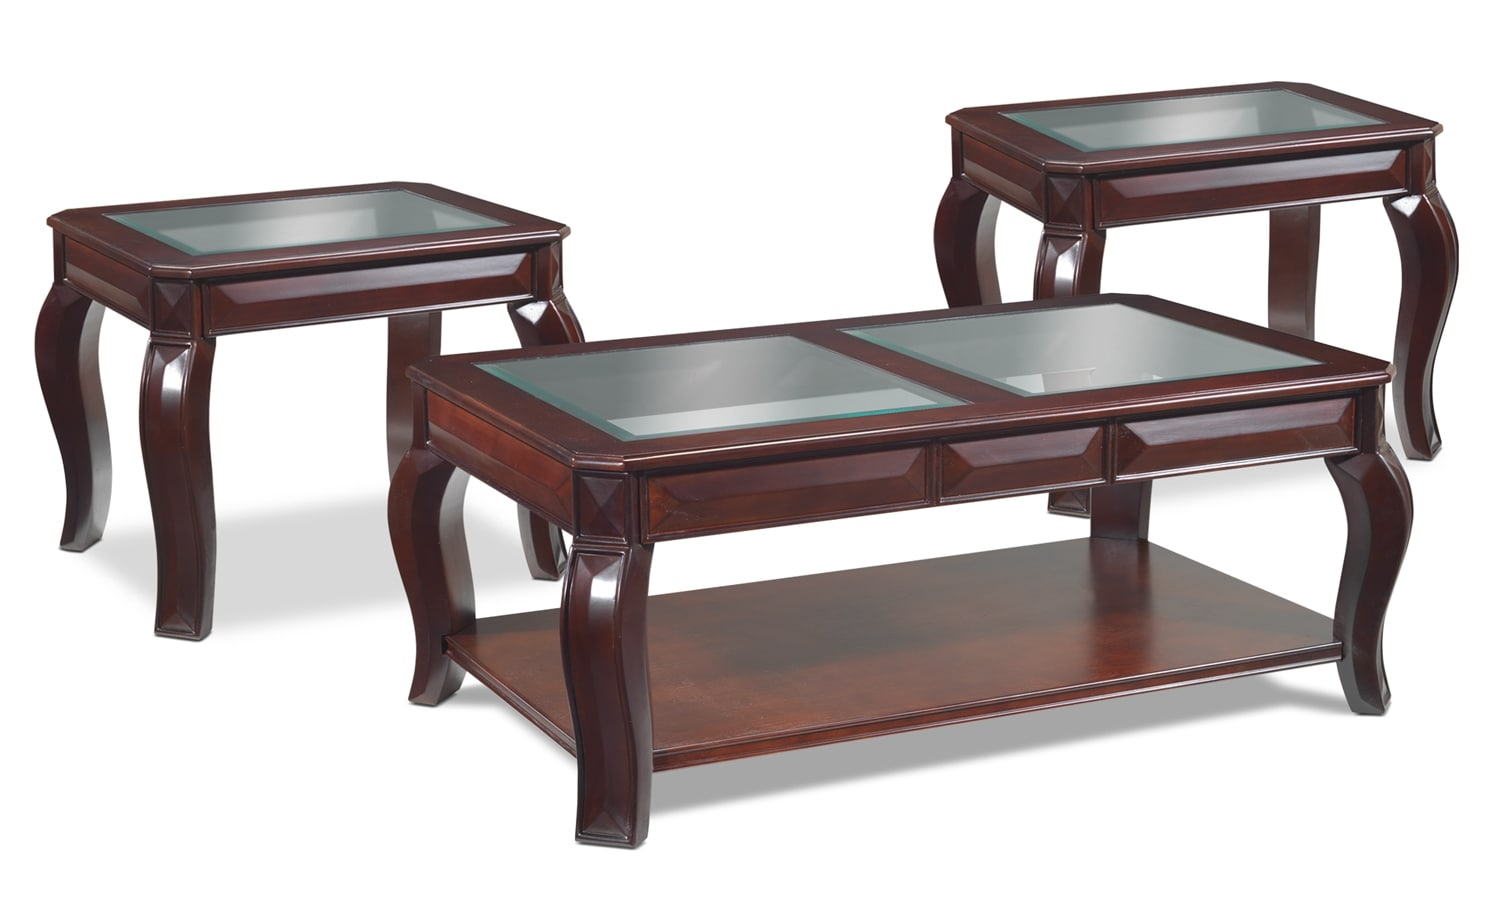 Jamison 3-Piece Table Set - Deep Espresso